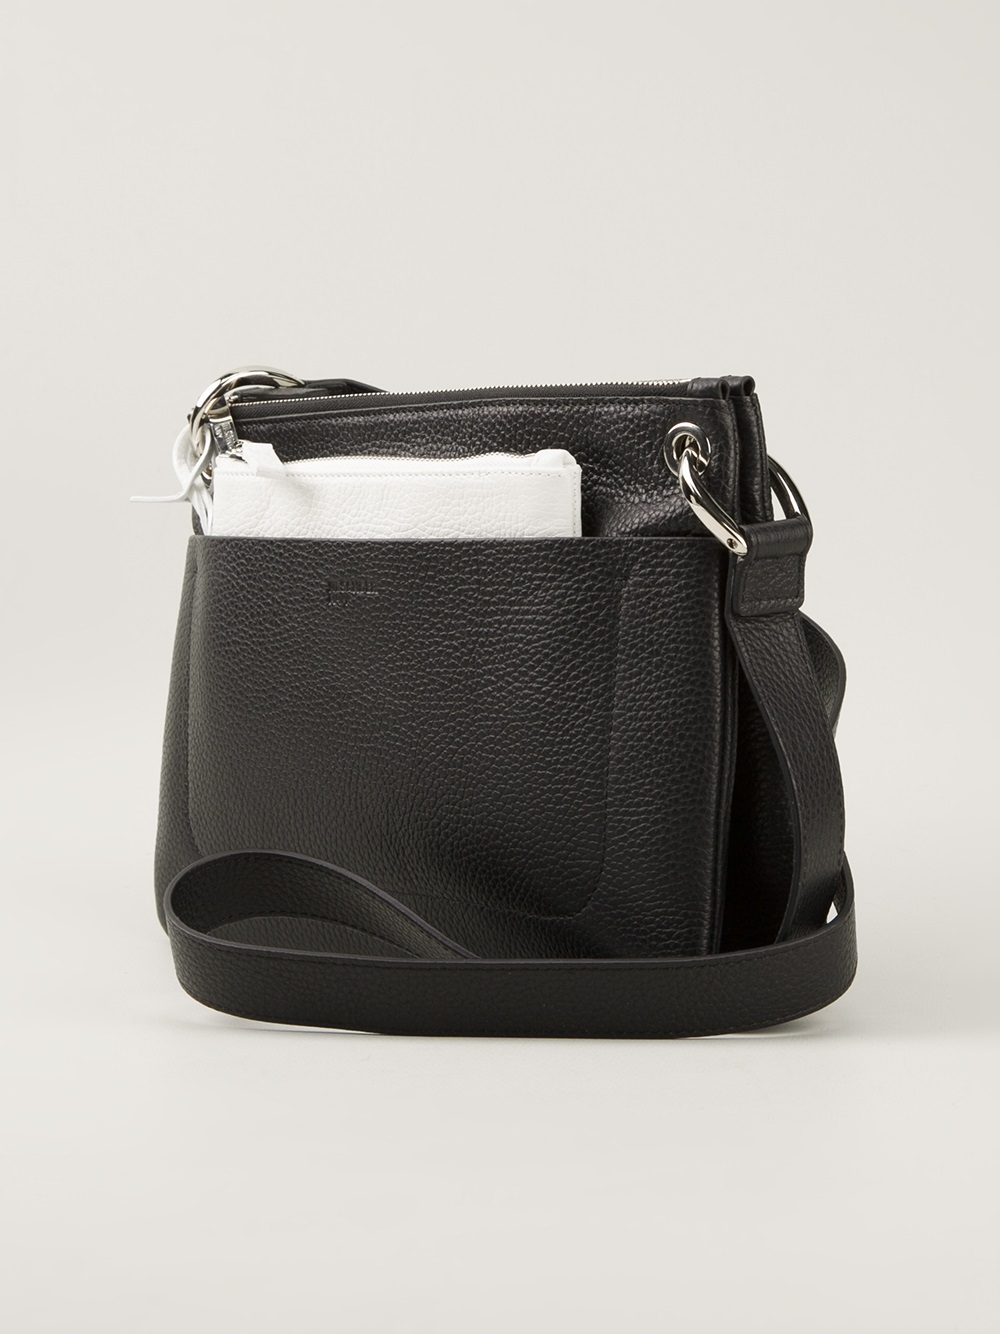 Clearance Hot Sale Free Shipping Collections Jil Sander Navy bucket shoulder bag Cheap Good Selling srGhSyYC